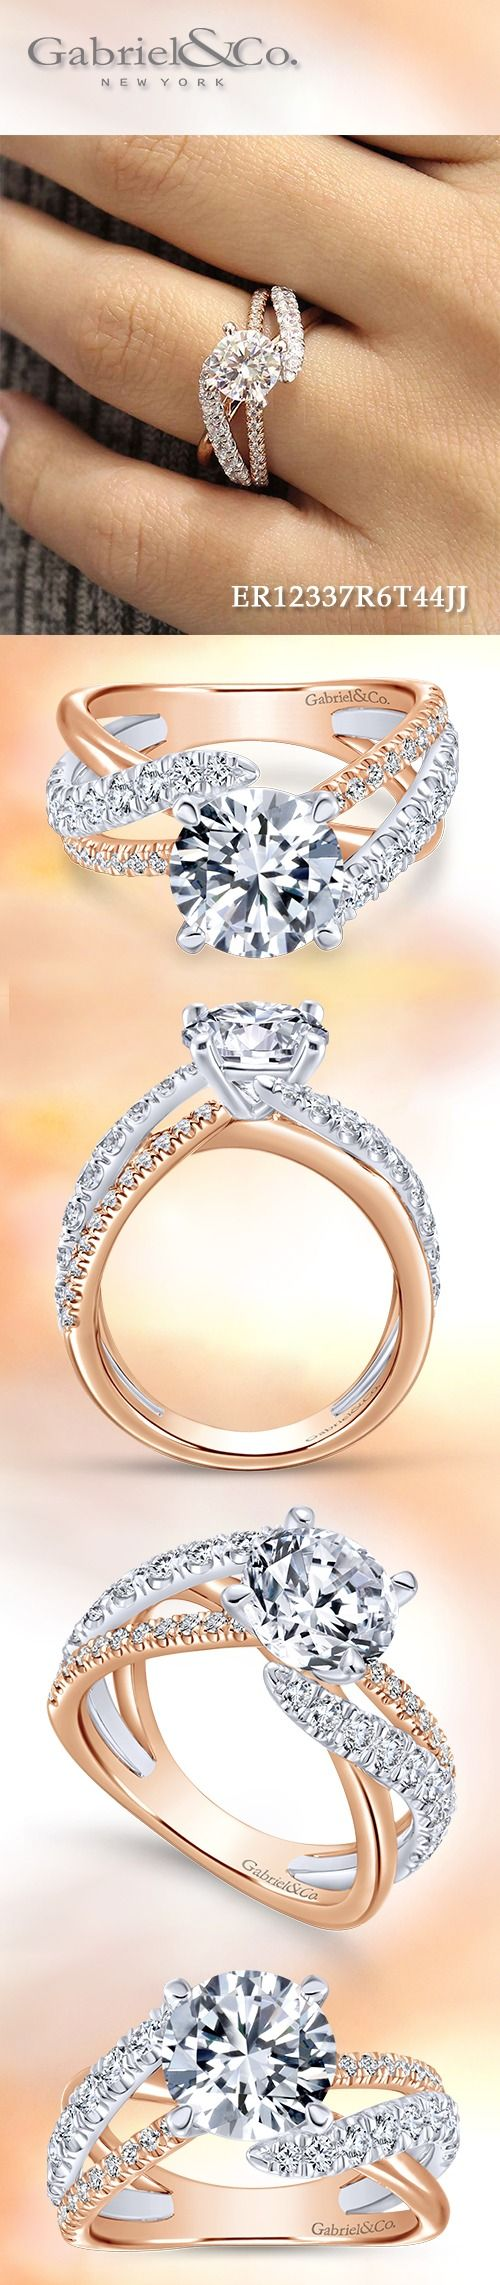 Best 25+ Matching wedding rings ideas on Pinterest | Wedding rings ...